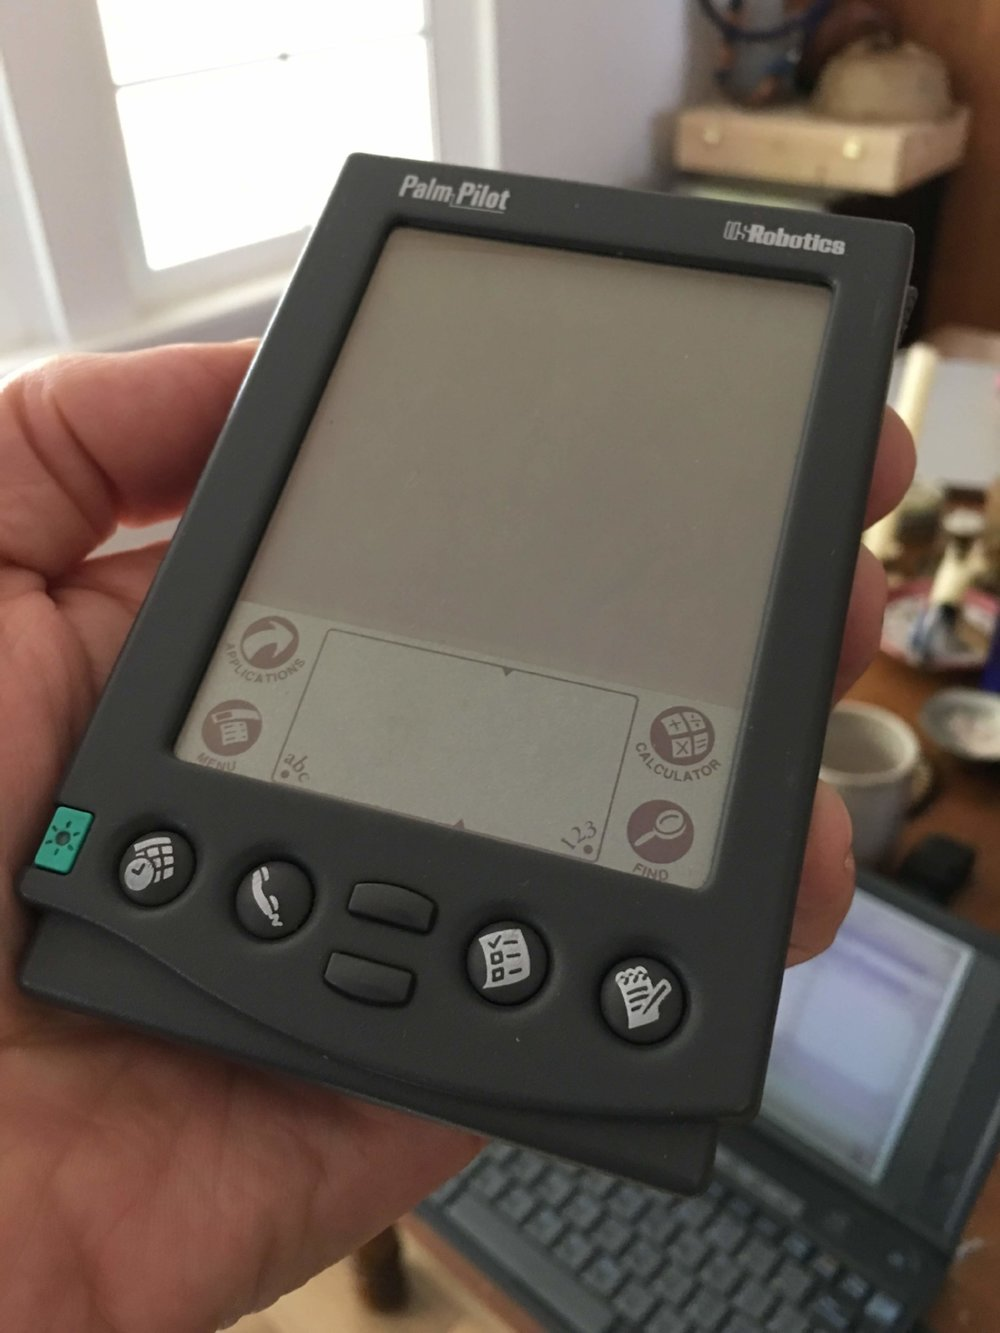 The original Palm Pilot.